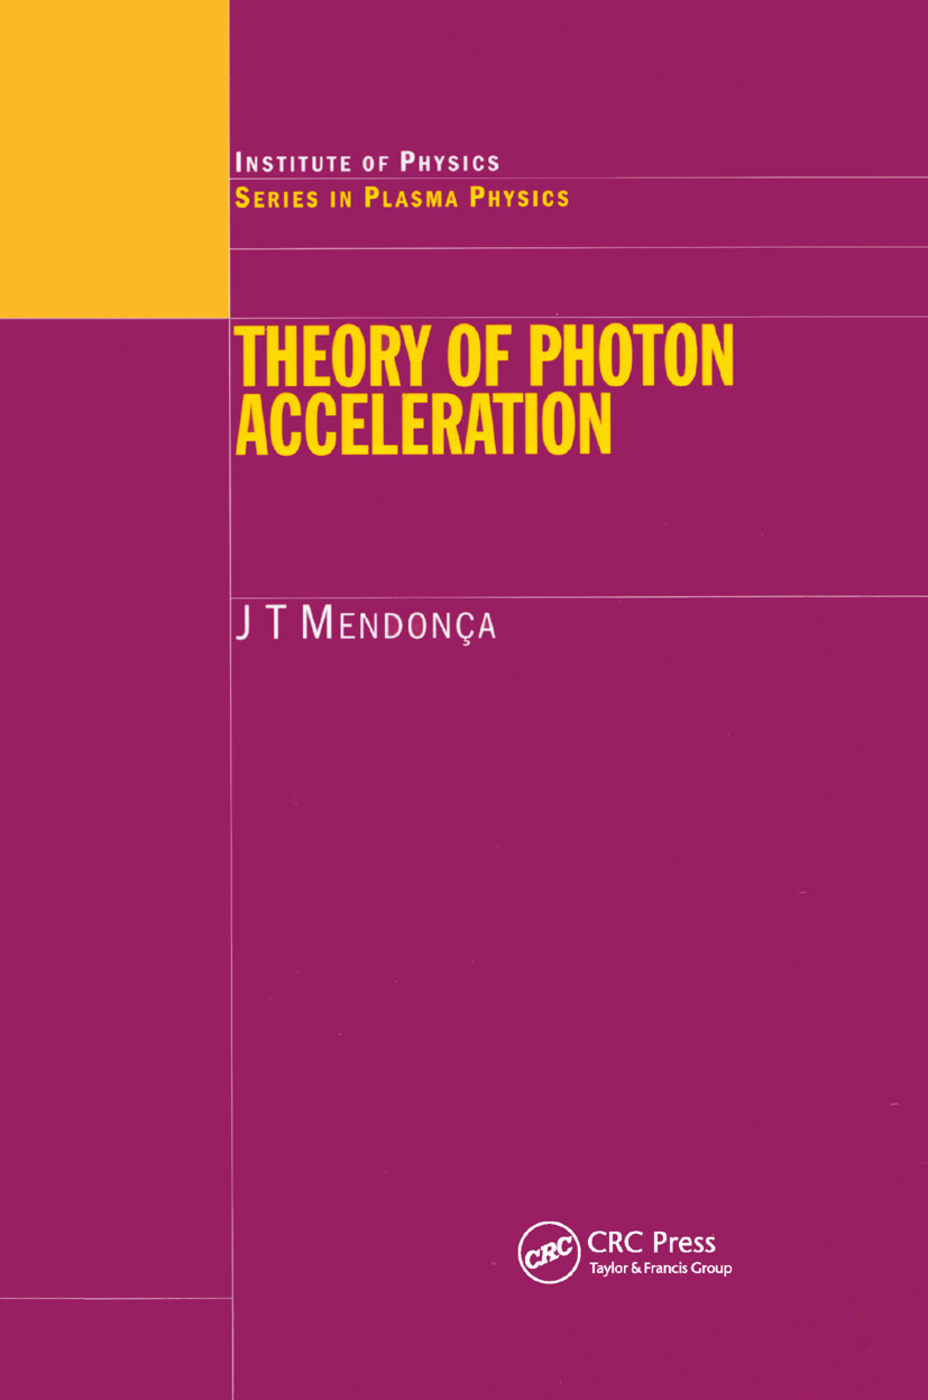 Theory of Photon Acceleration